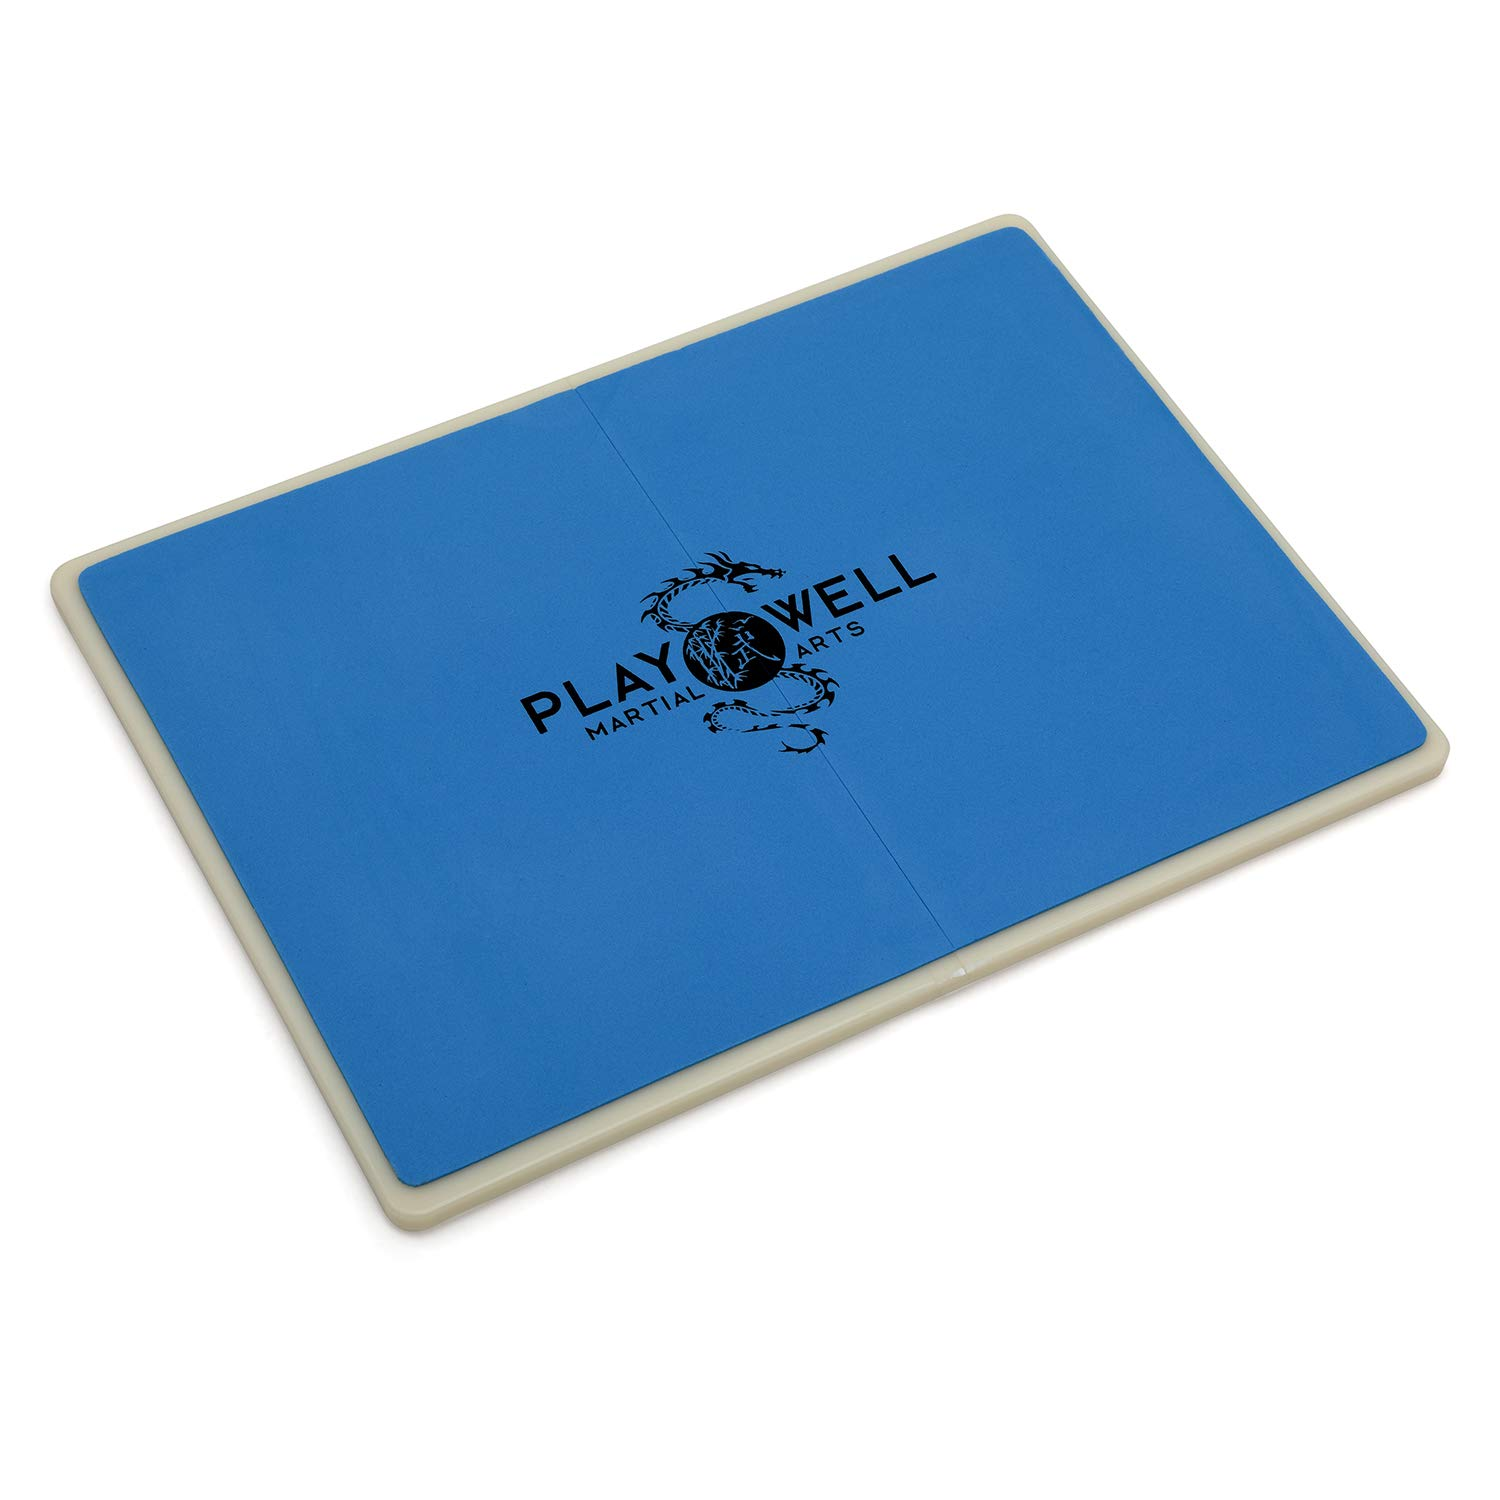 Playwell Martial Arts Childrens Break/Smash Rebreakable Boards - Blue by Playwell